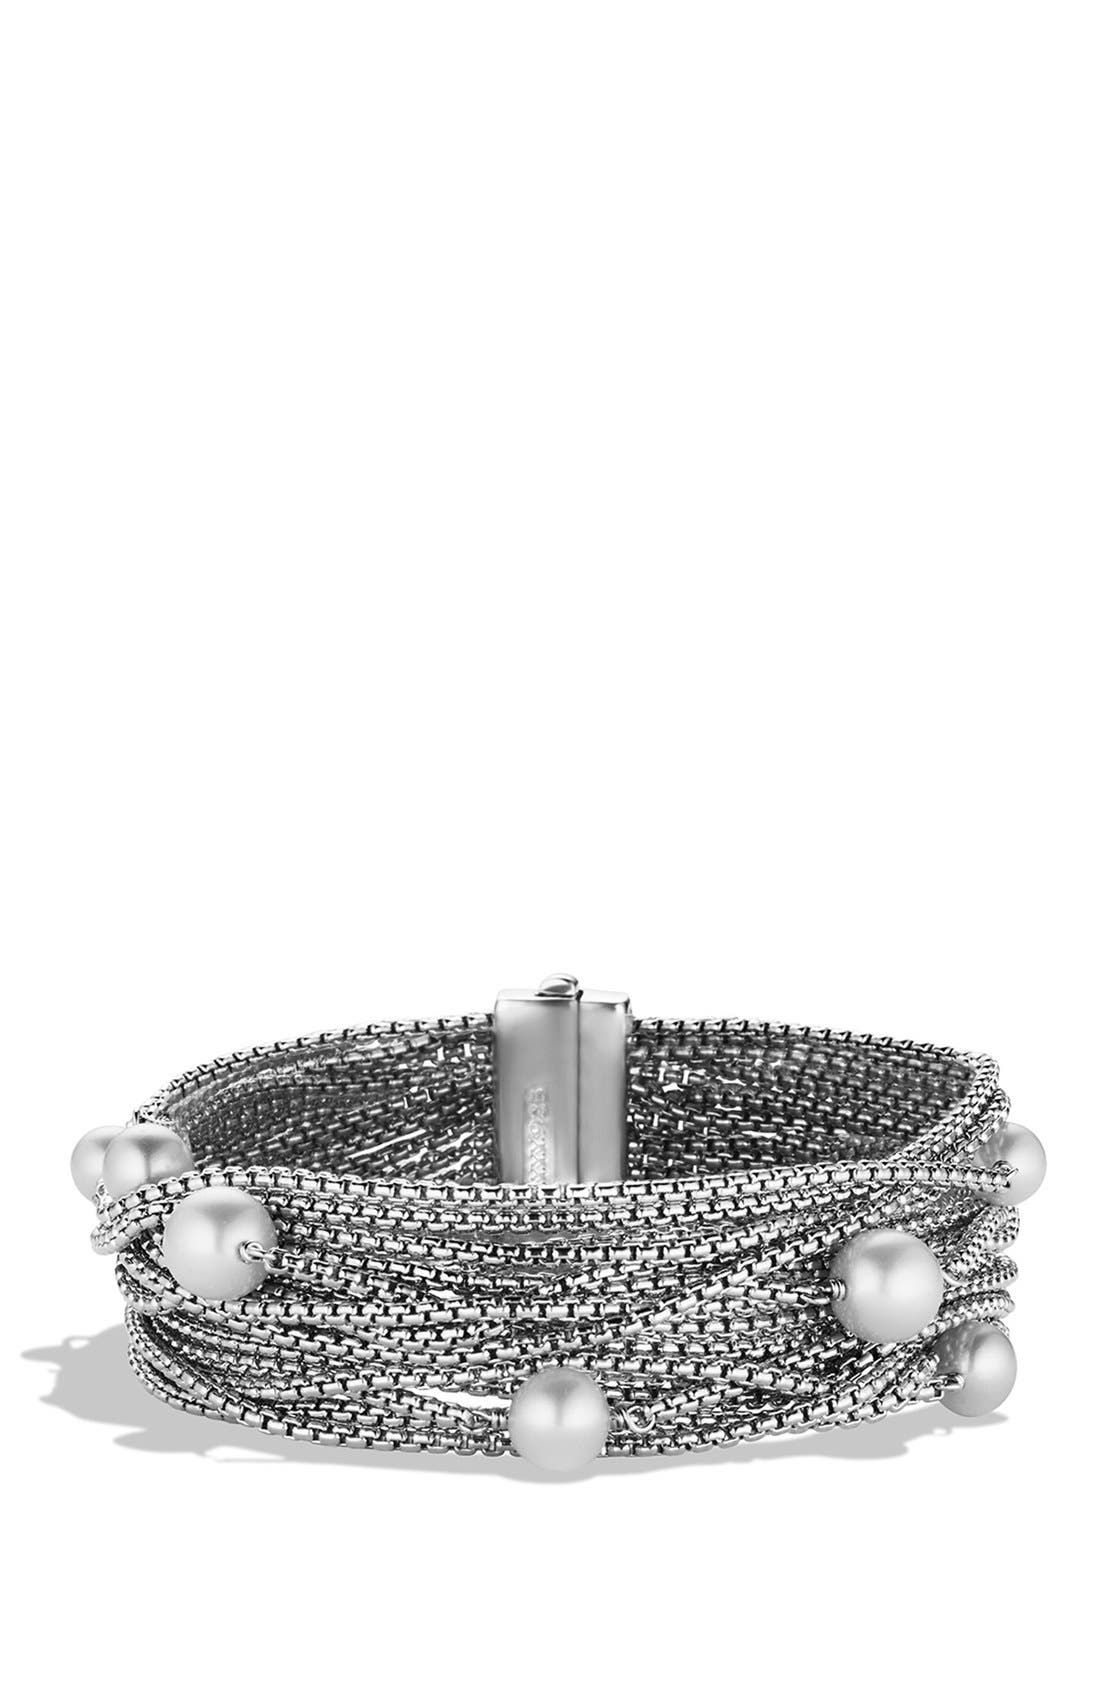 Sixteen-Row Chain Bracelet with Pearls,                             Main thumbnail 1, color,                             101